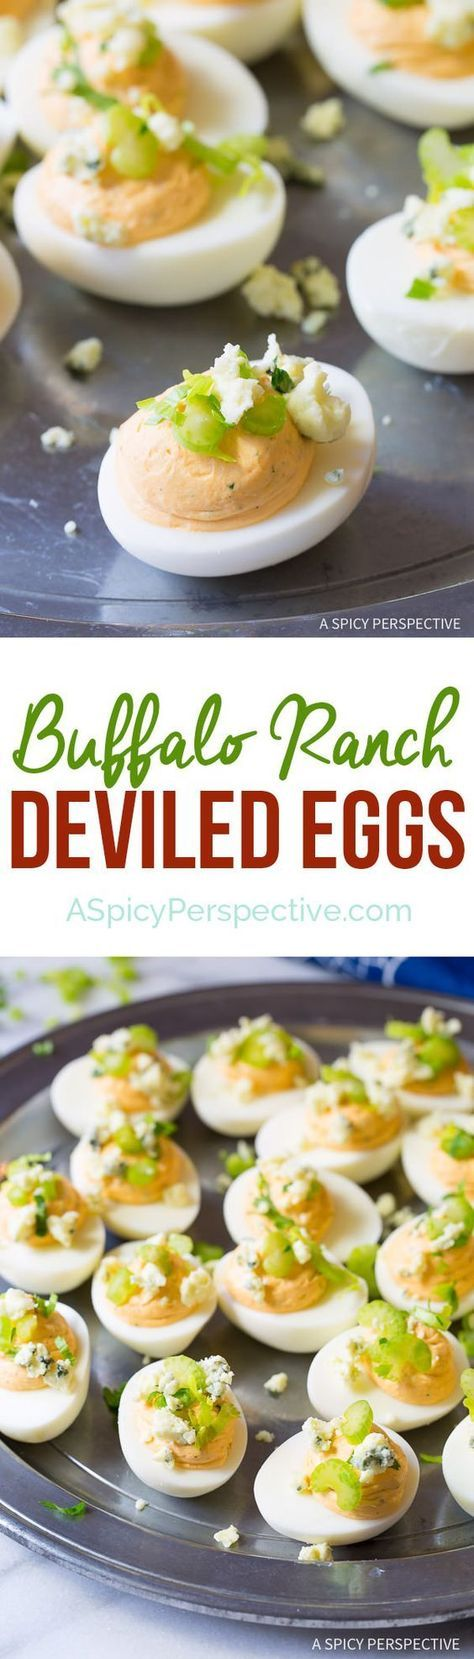 Bold Creamy 6-Ingredient Buffalo Ranch Deviled Eggs Recipe   ASpicyPerspective.com #rancheverything @hvranch